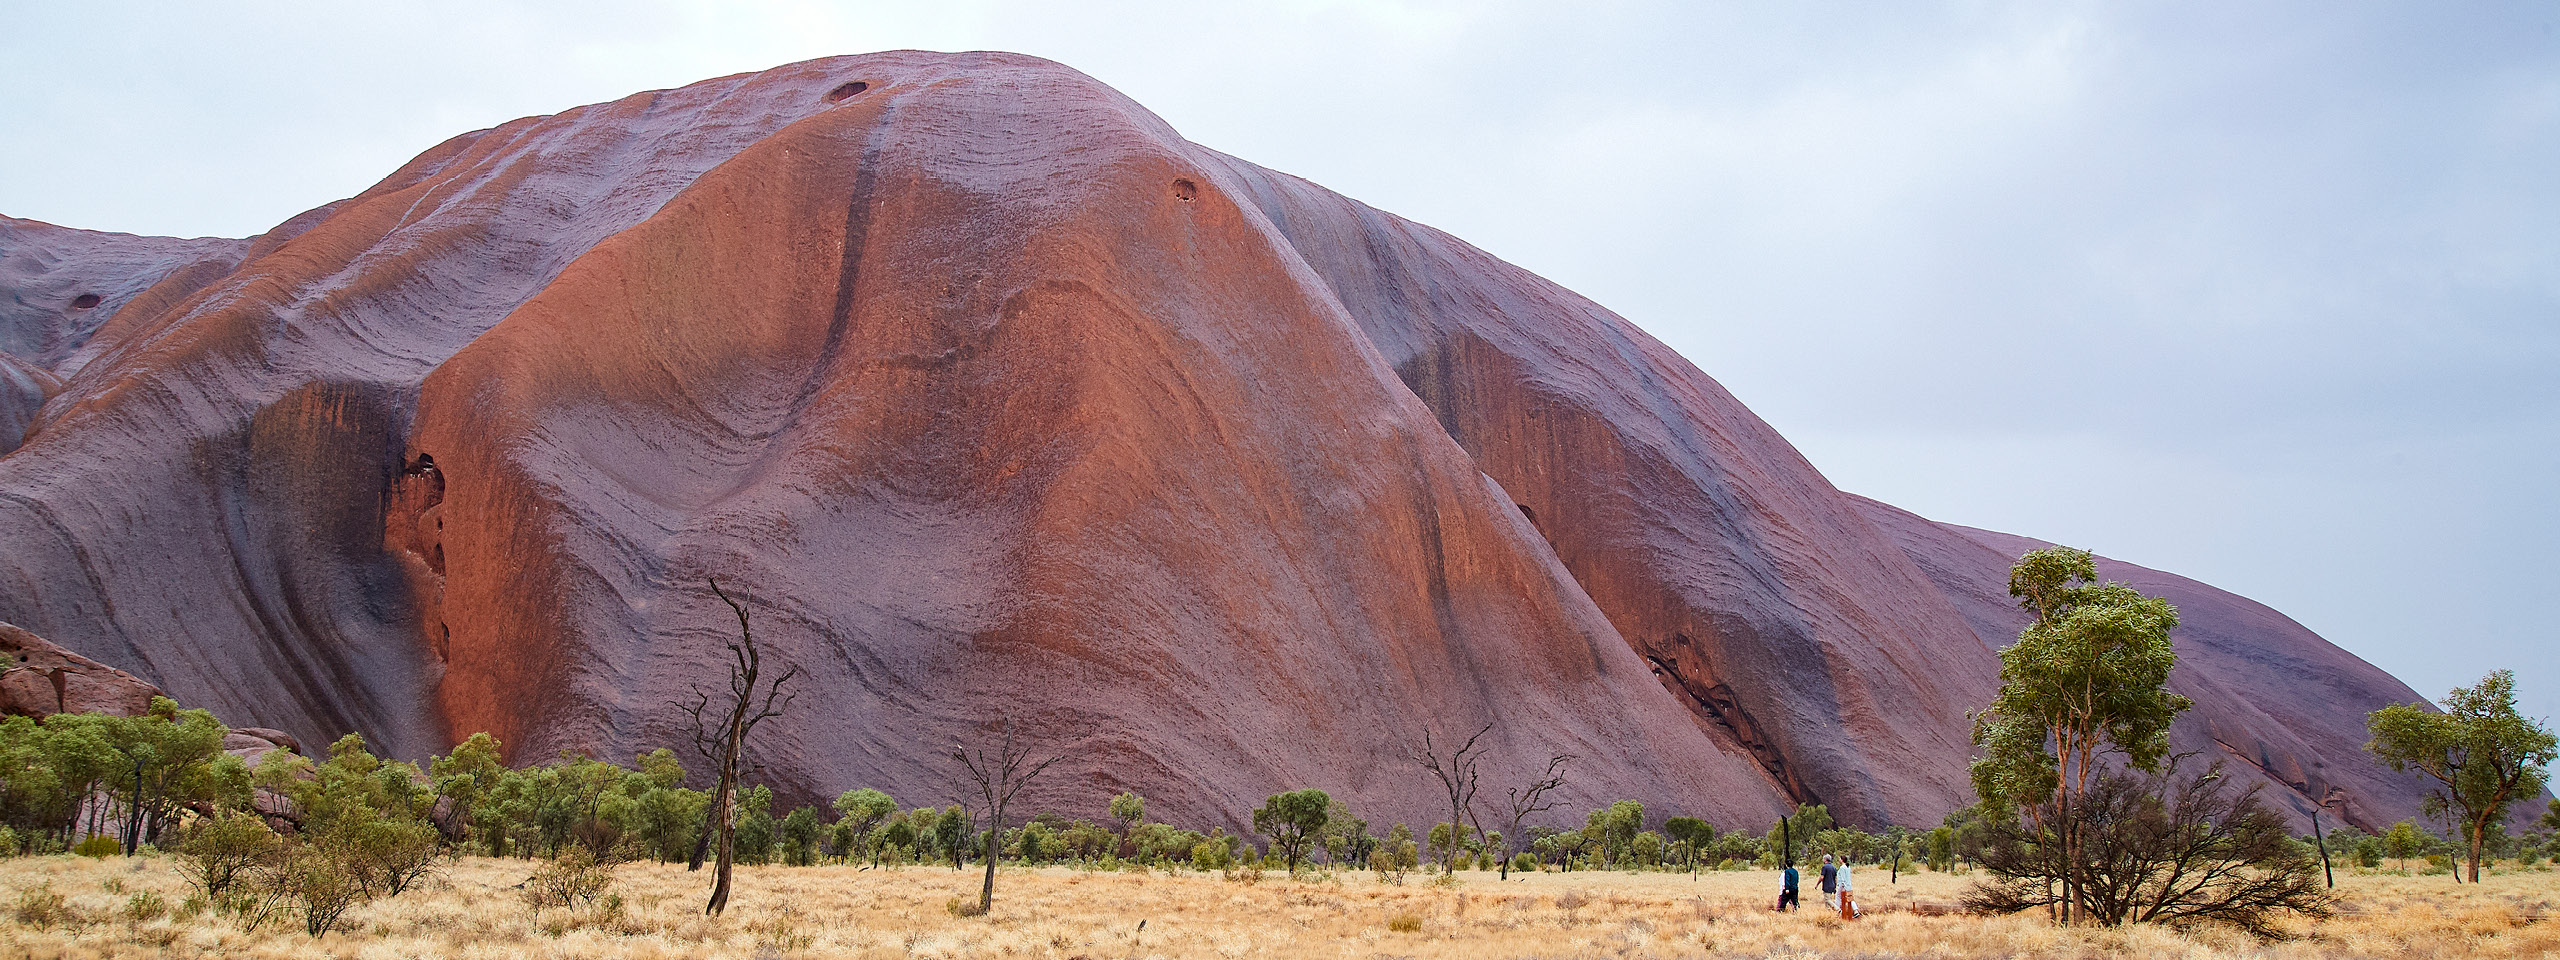 Walking along magnificent Uluru